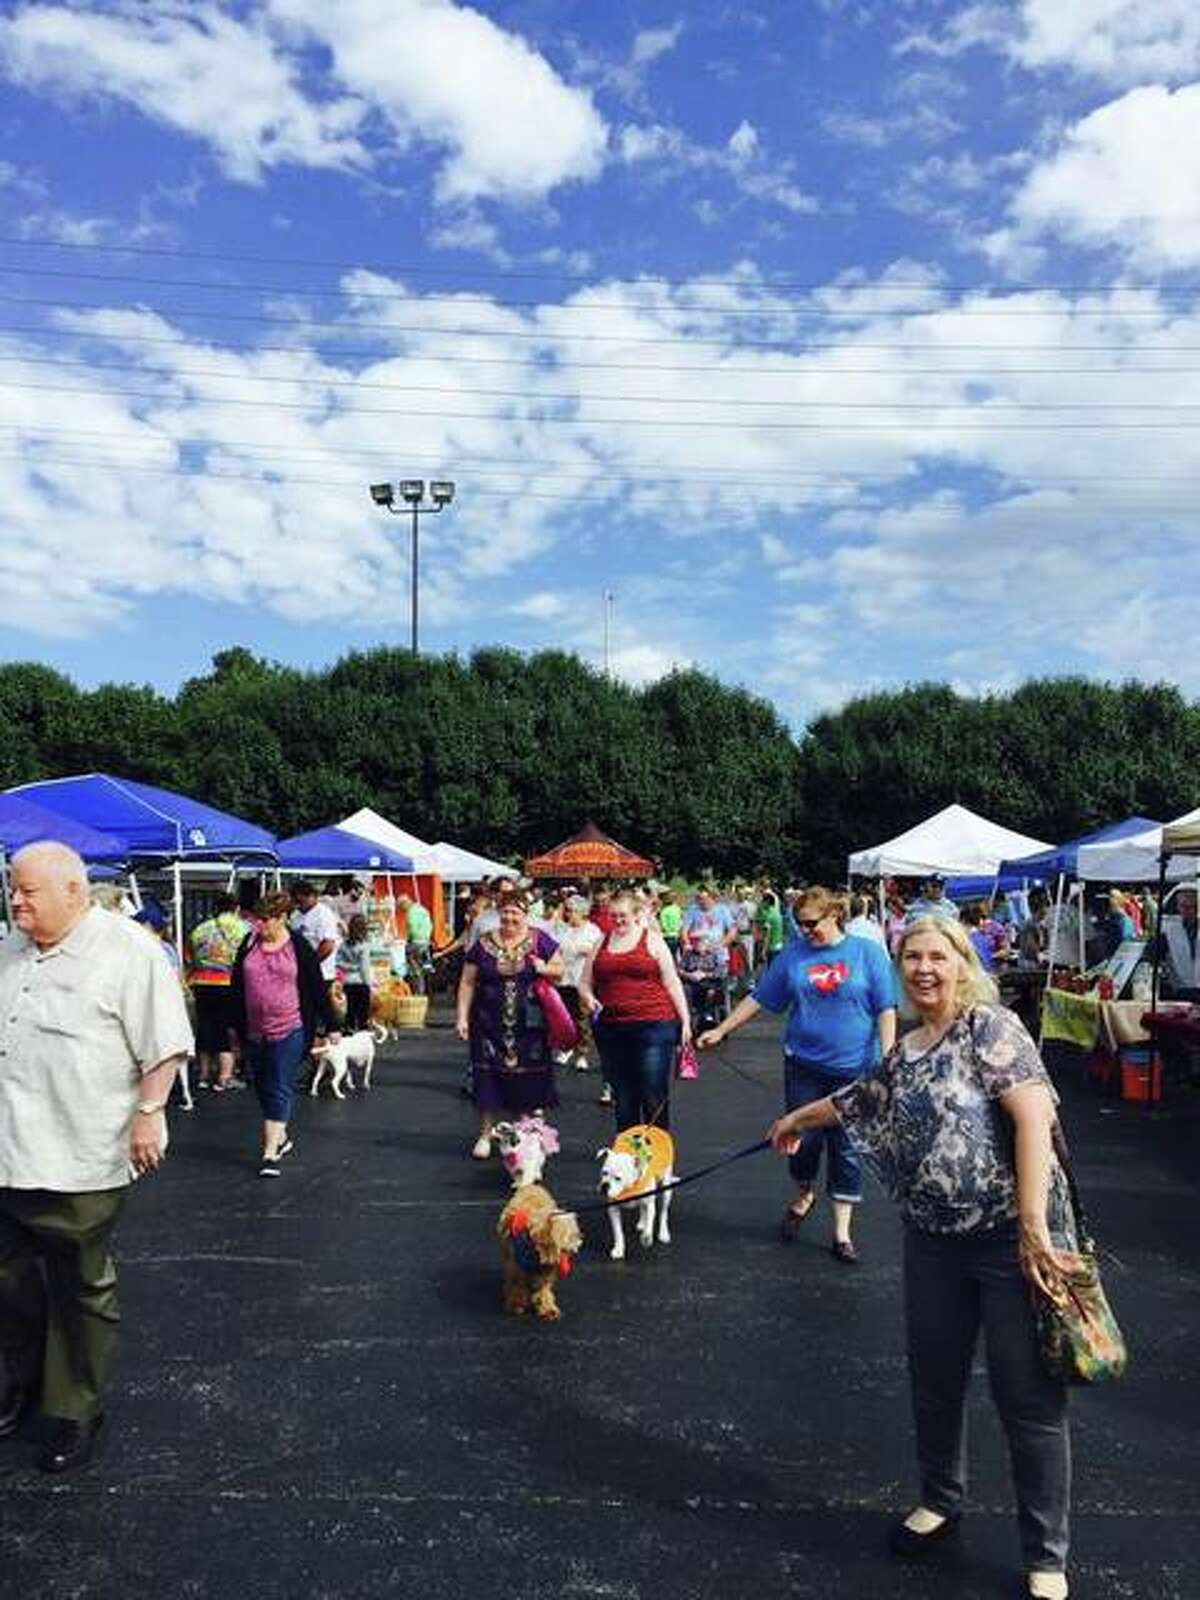 The 2021 season of the Alton Farmers' and Artisans' Market will begin at 8 a.m. Saturday in the parking lot at the corner of Landmarks Boulevard and Henry Street, rain or shine. From then on, every Saturday from 8 a.m. to noon the market will be held through Oct. 16.